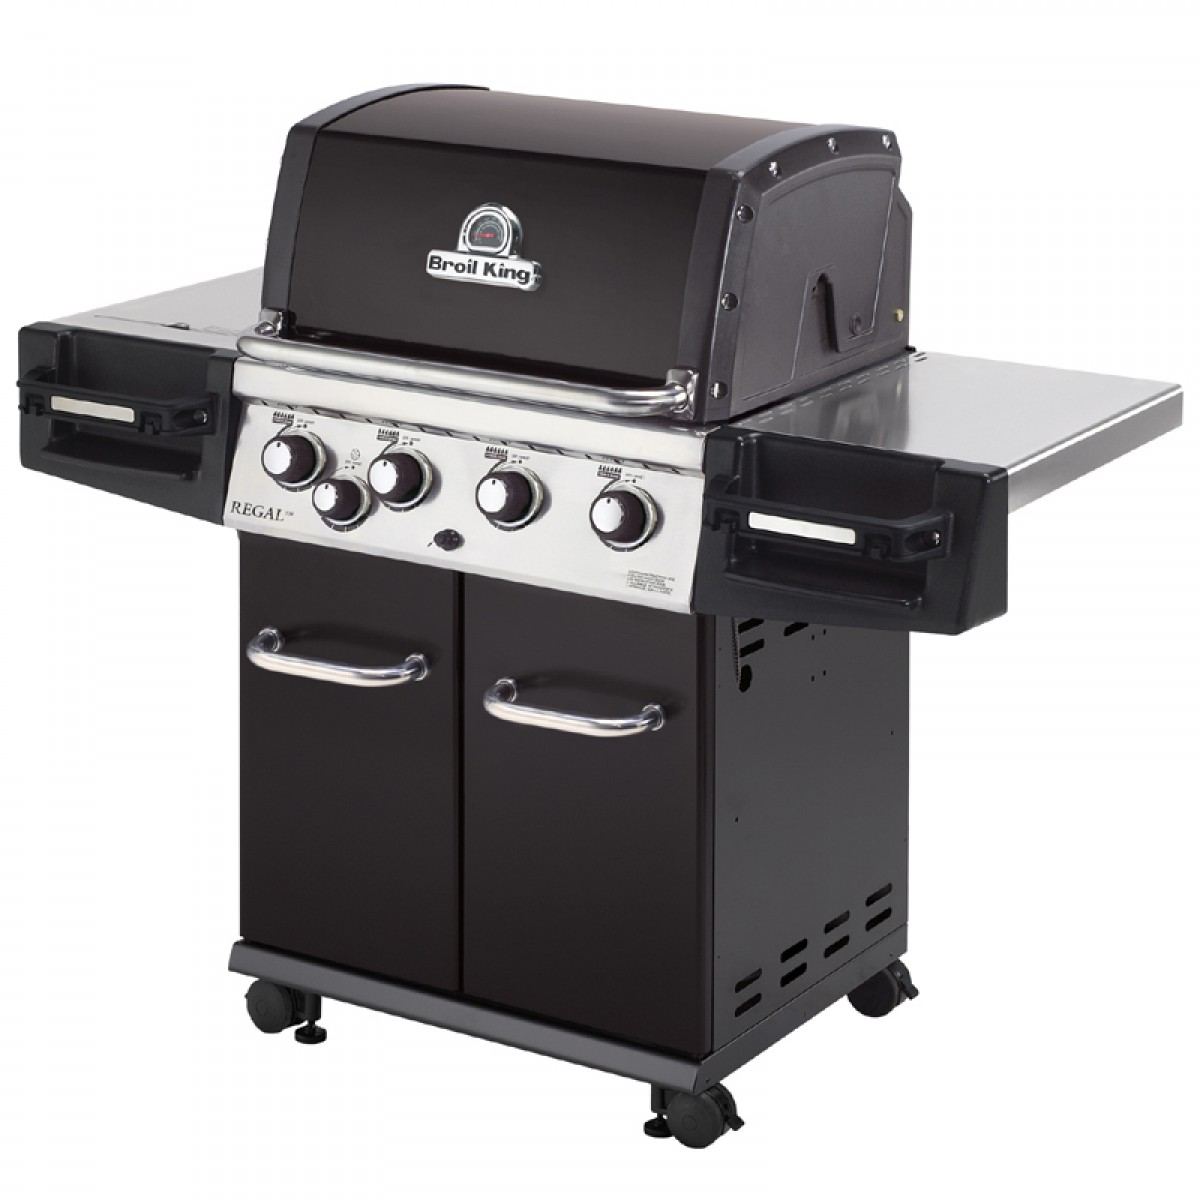 Broil King Regal 420 Propane Barbecue Grill-956154 ...